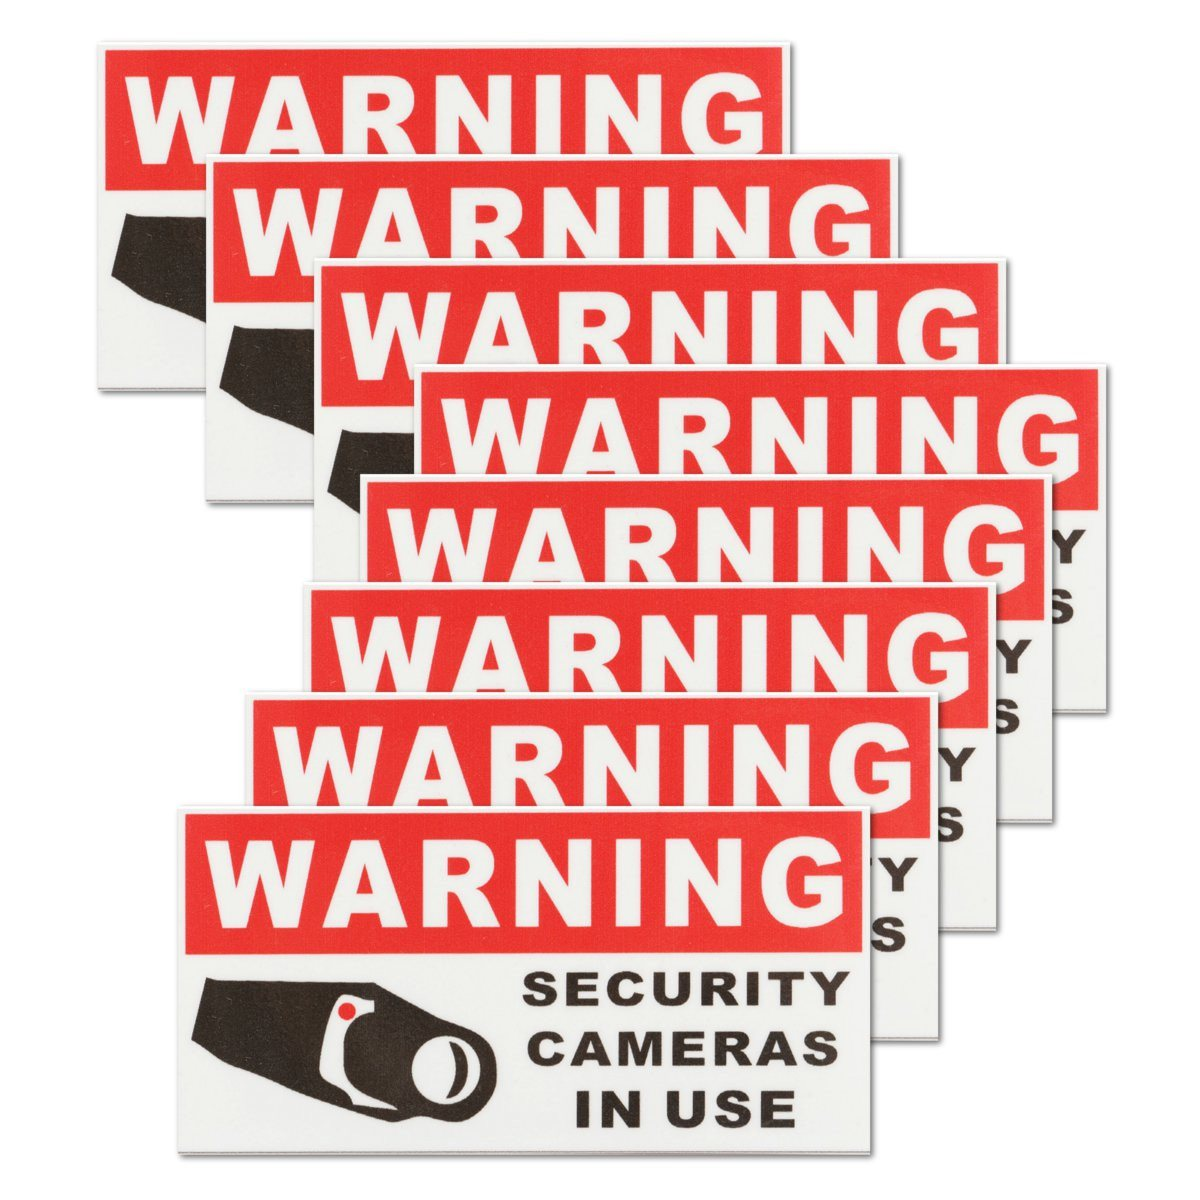 все цены на NEW 8Pcs SECURITY CAMERA IN USE Waterproof Self-adhensive Warning Stickers Safety Signs Decal